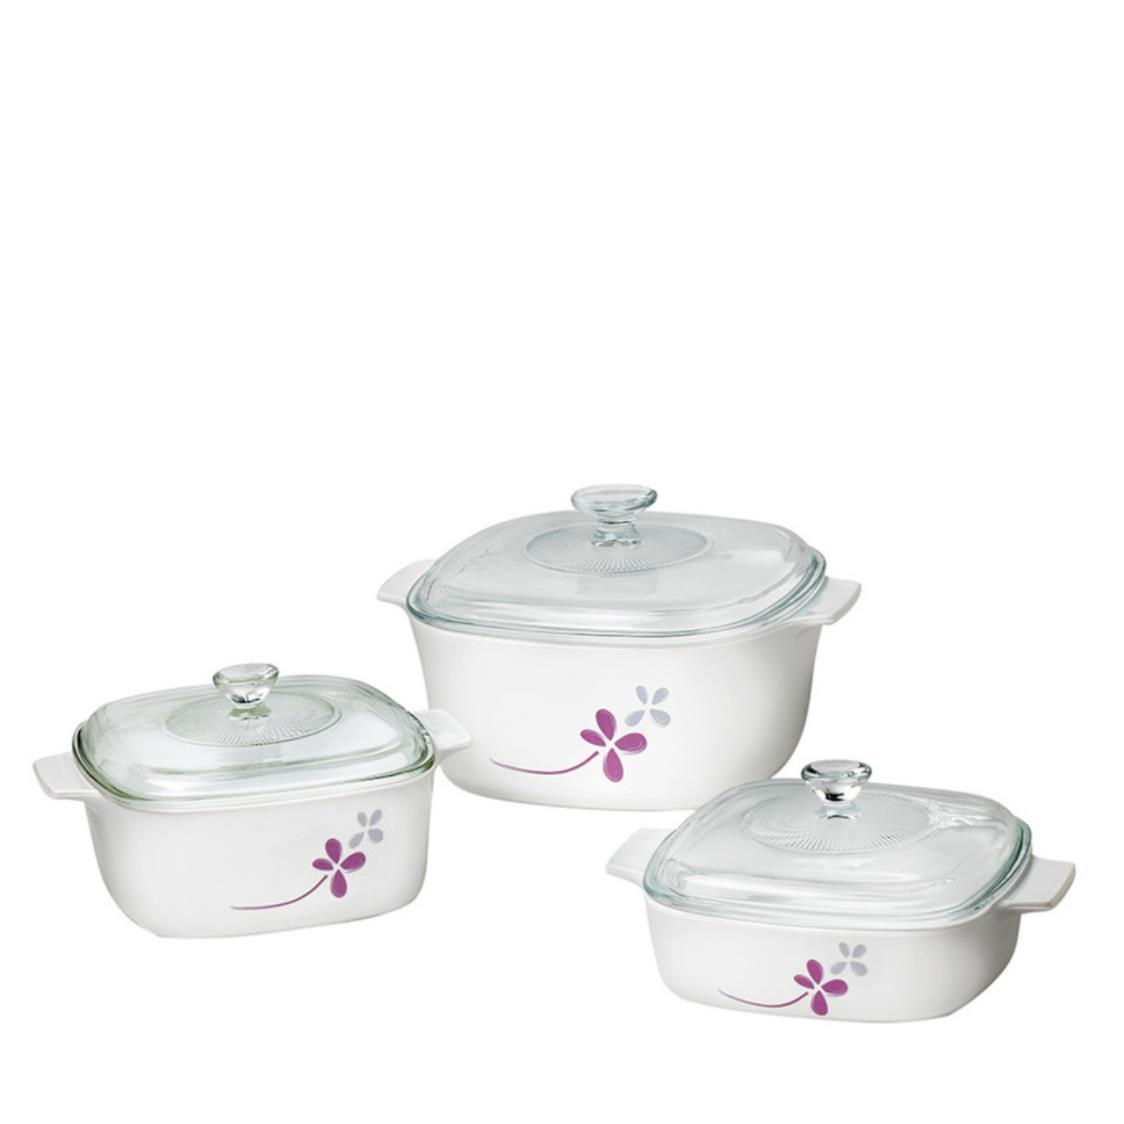 6pc Casserole Set Warm Pansies